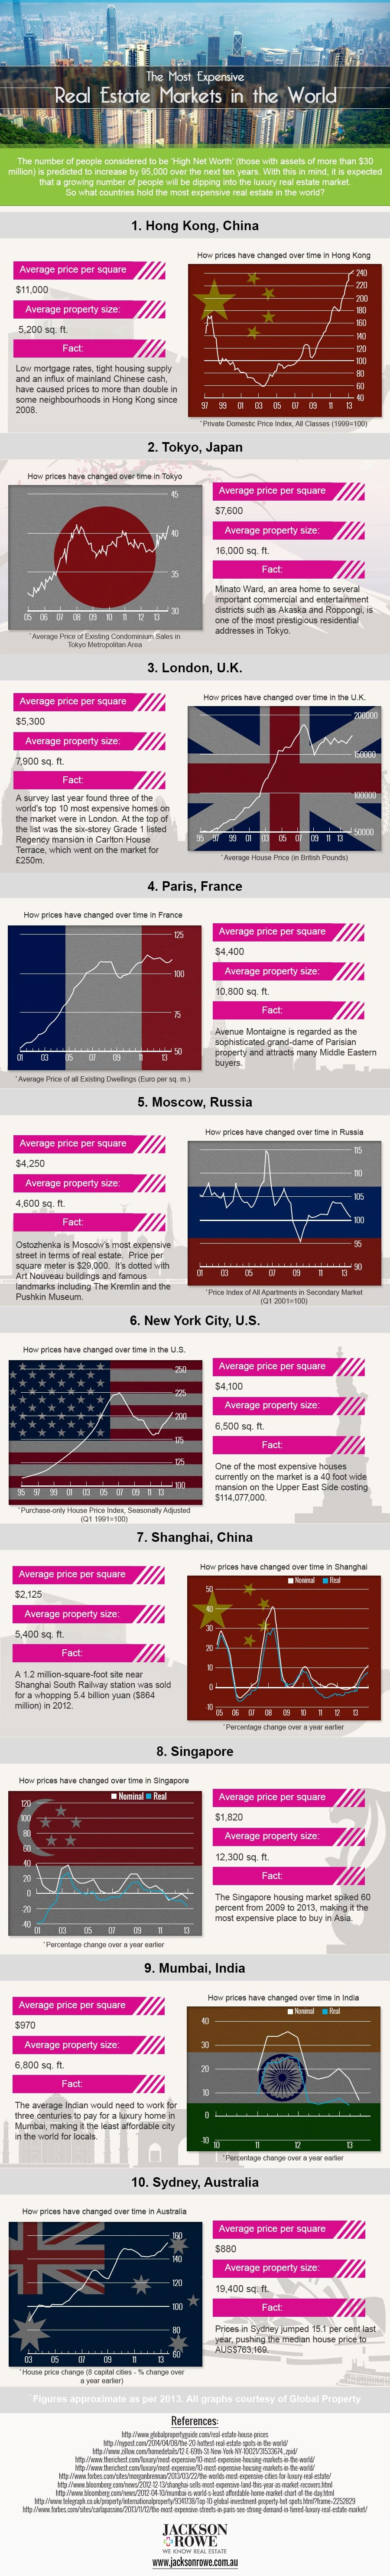 Top 10 Most Expensive Real Estate Markets in the World (Infographic) General Market Info Infographics Latest Posts